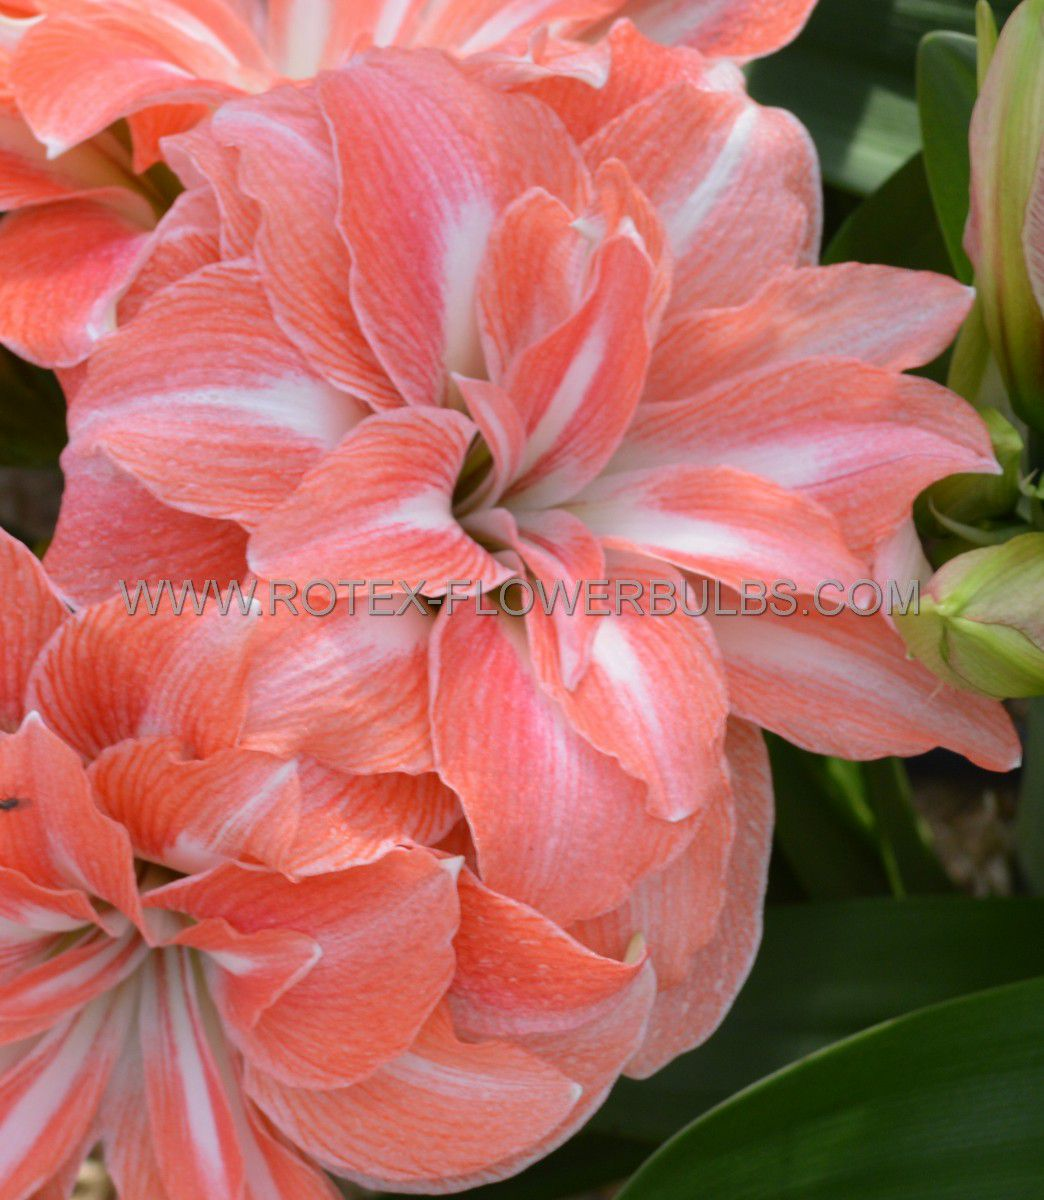 hippeastrum amaryllis double flowering lady jane 3436 cm 6 popen top box